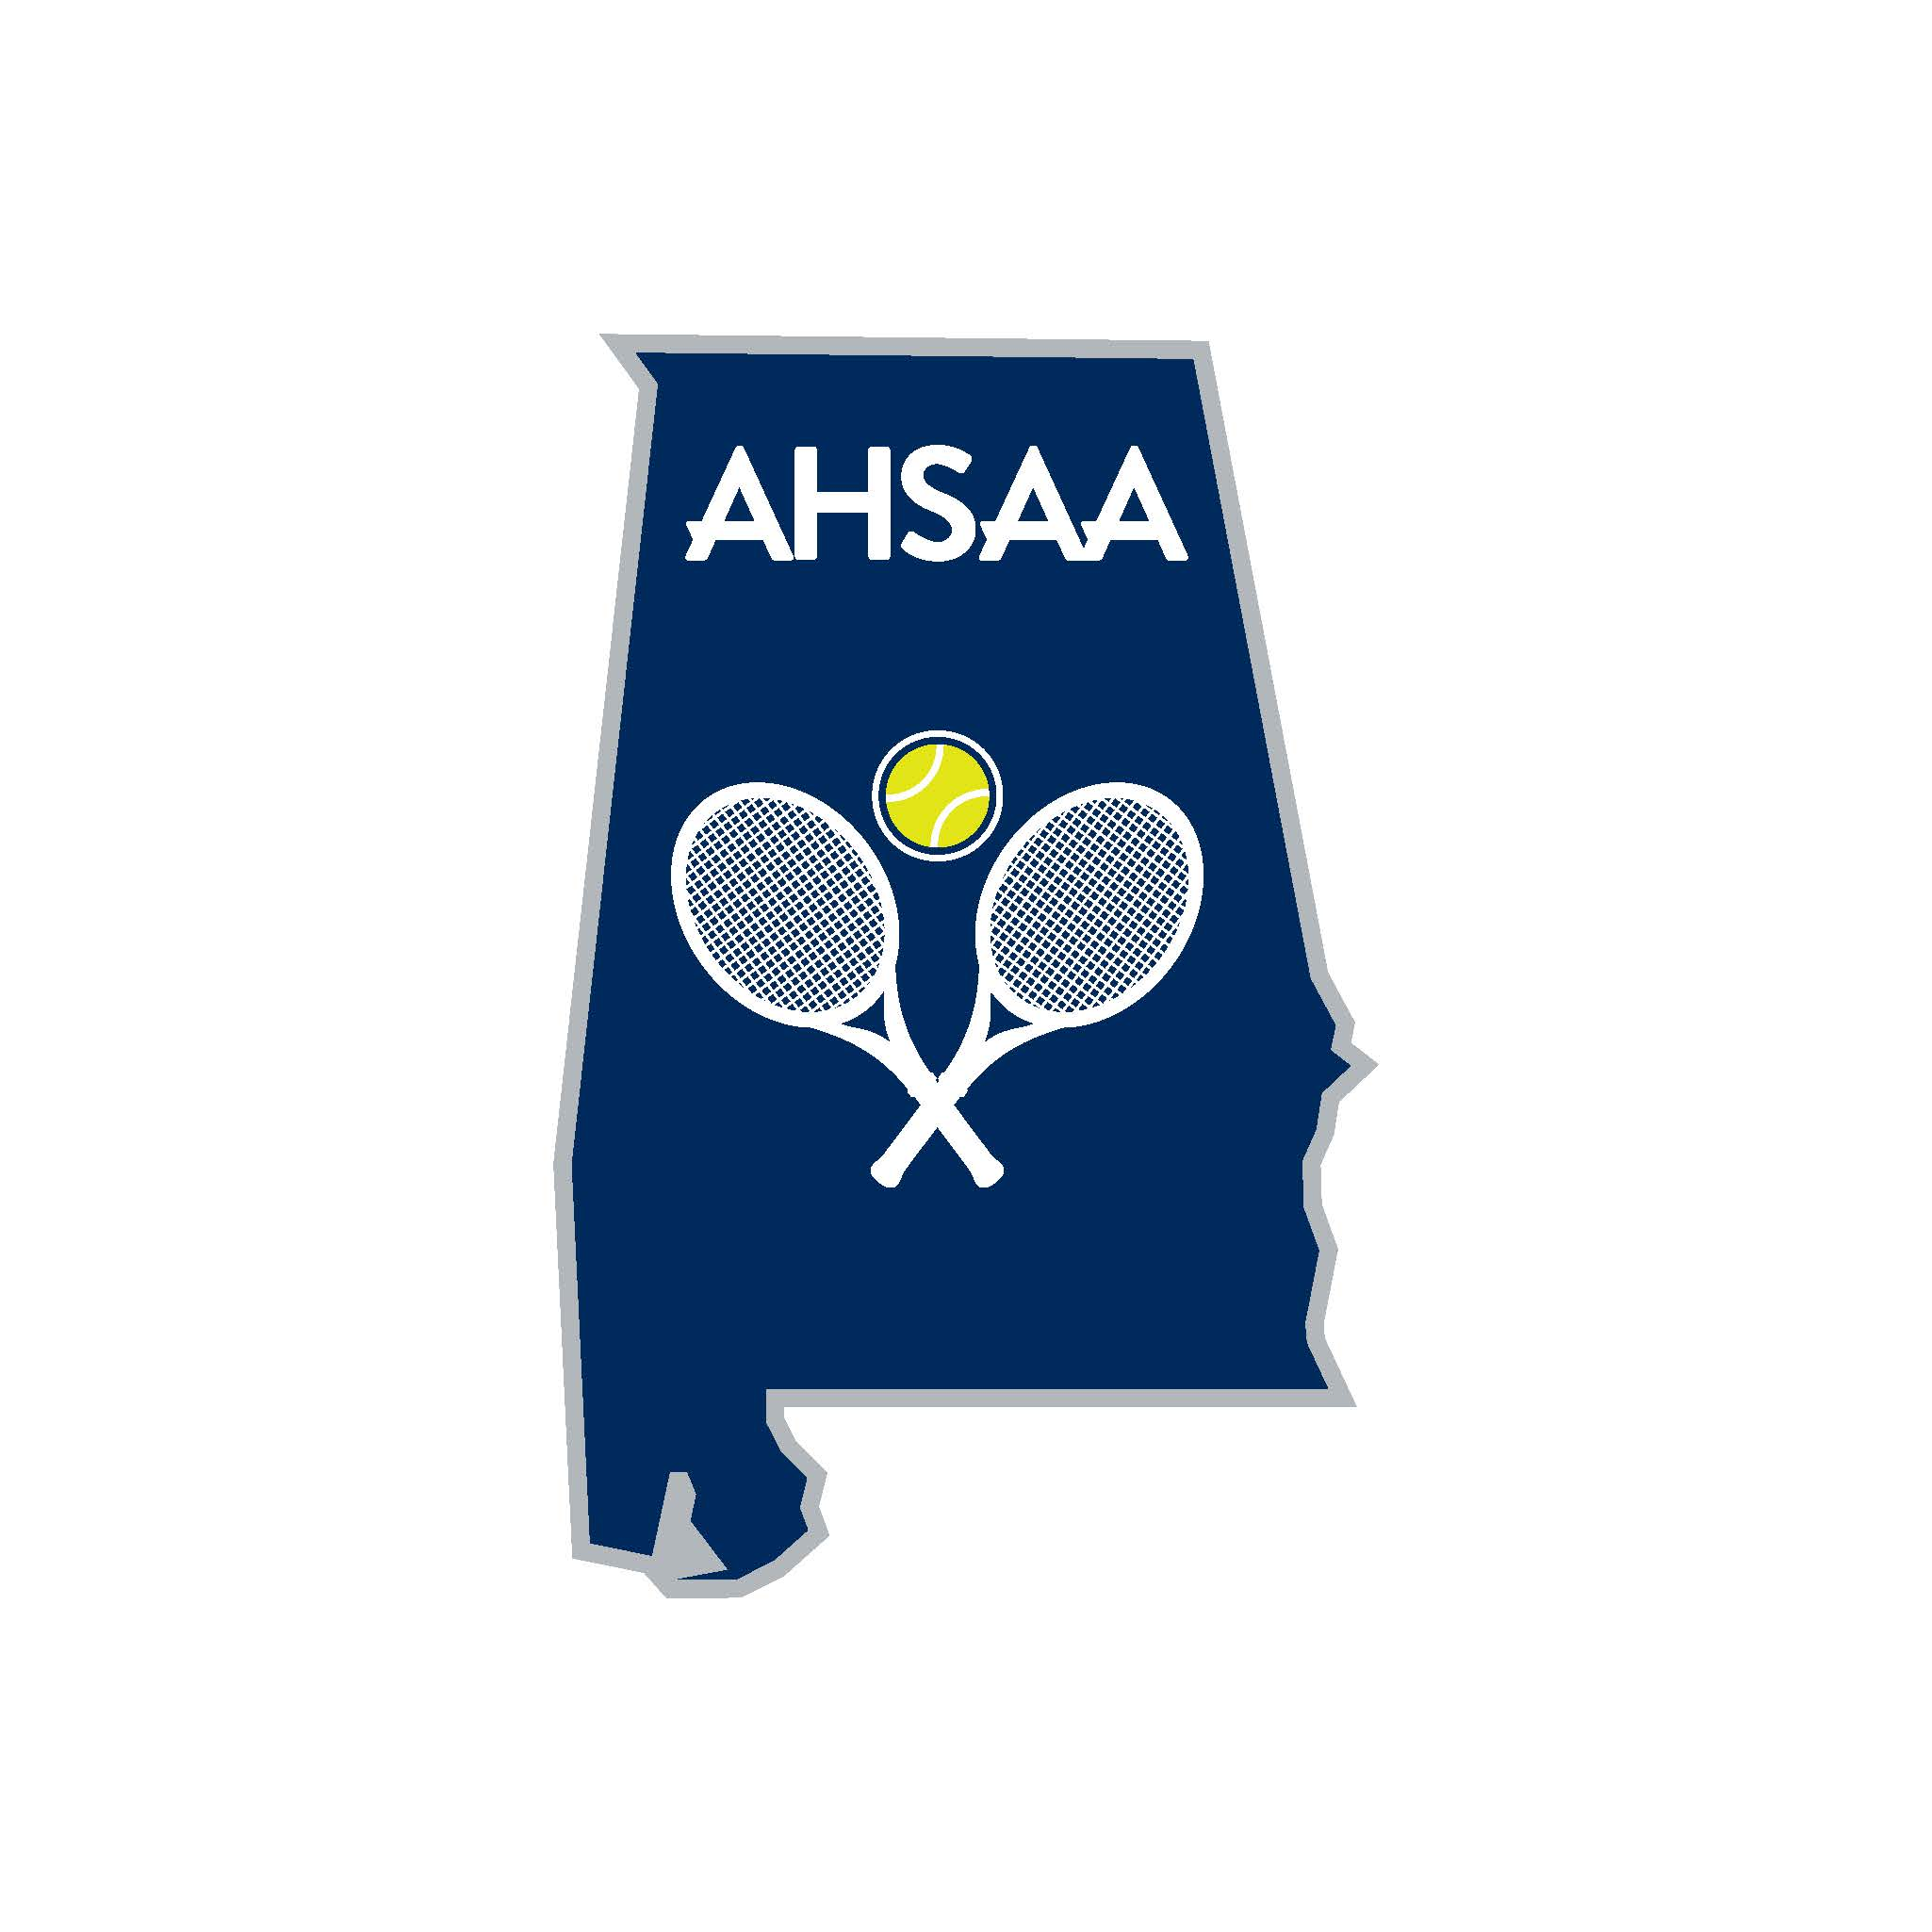 More Pictures Click Here: AHSAA > Home